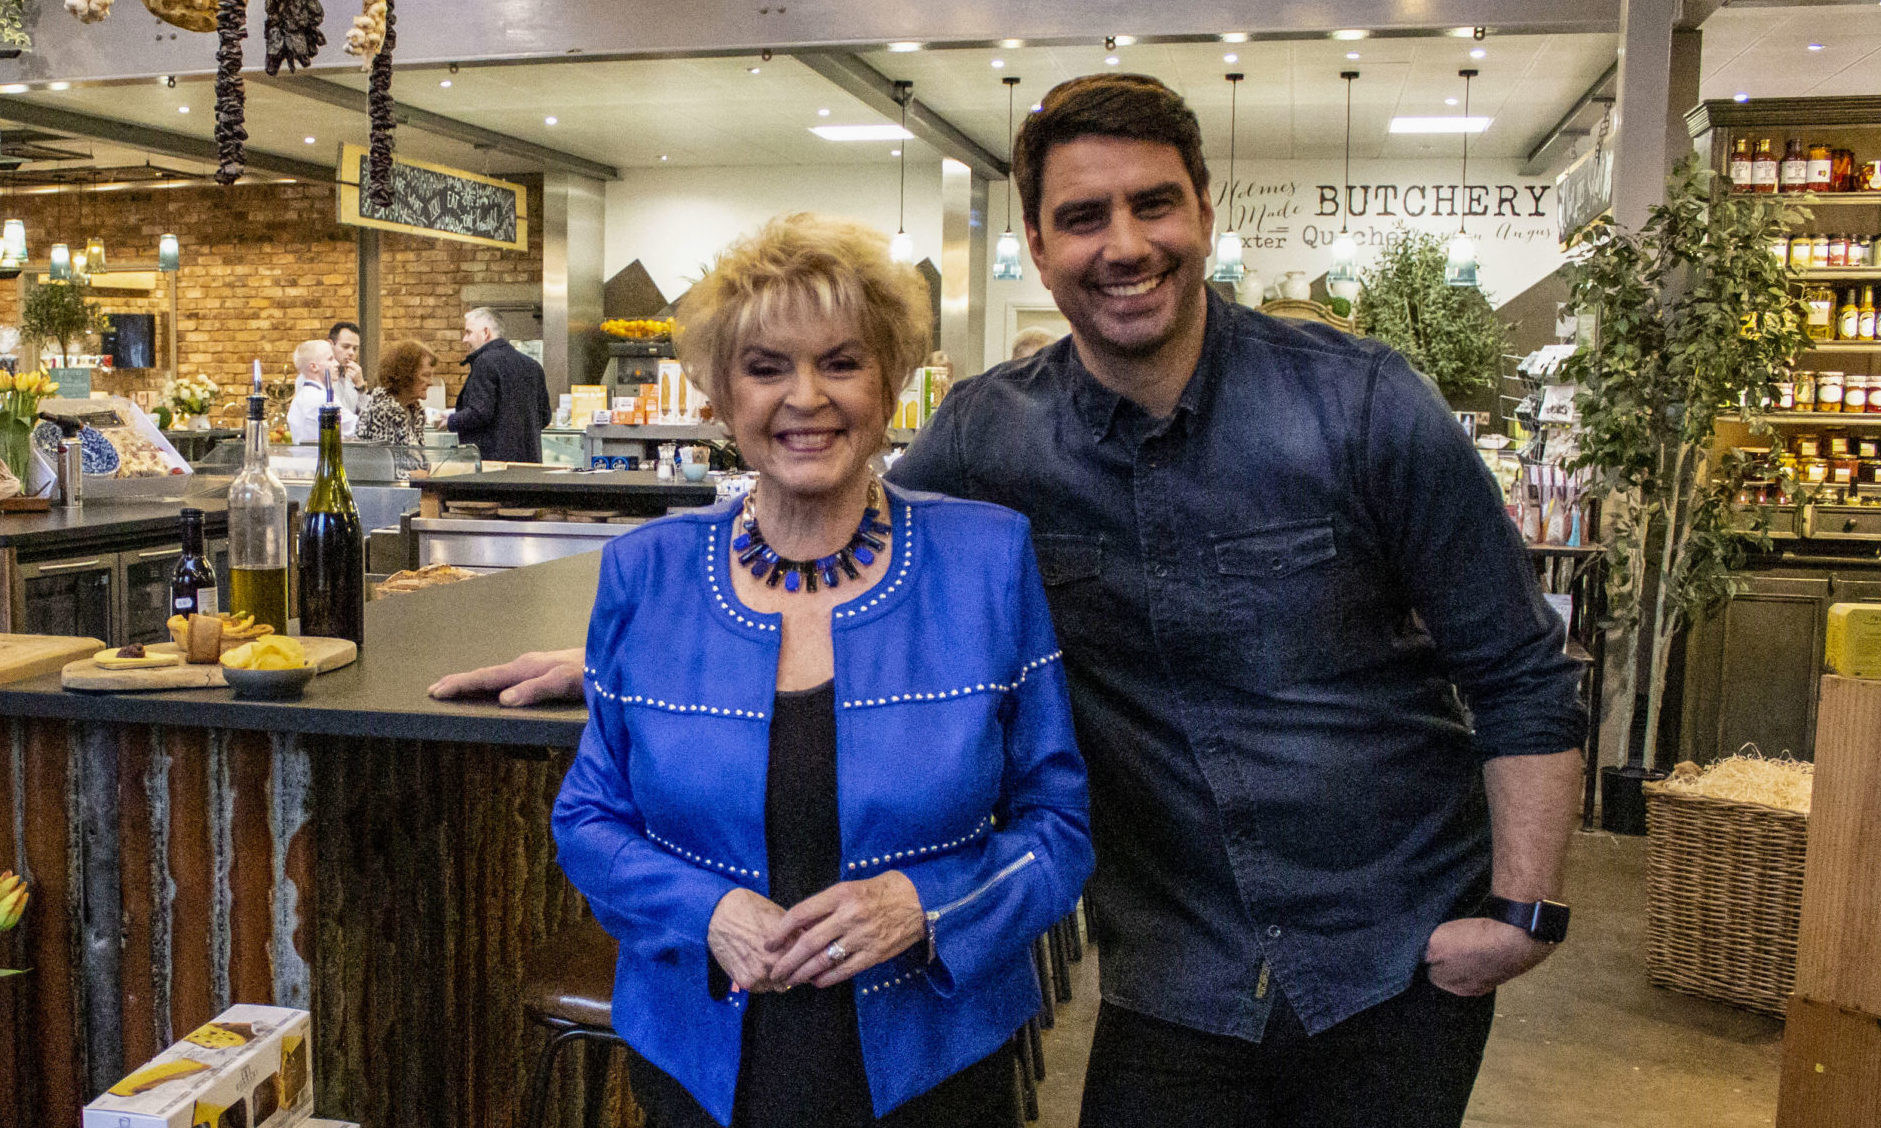 Gloria Hunniford and Chris Bavin.